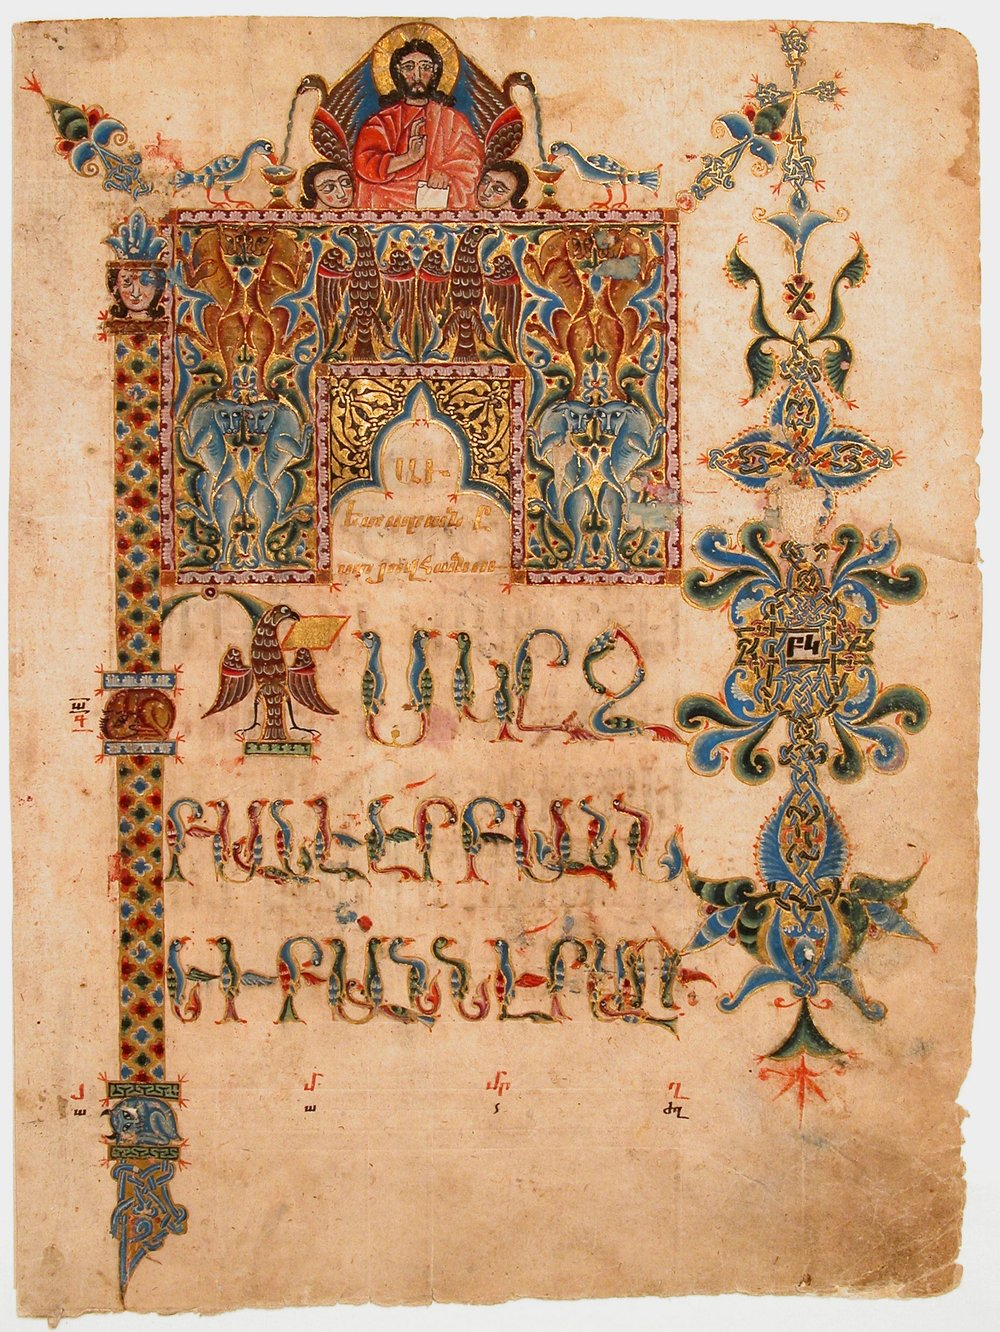 Title page from the Gospel of John - Illustrator: Sargis (early 14th c. CE) - MET Collection